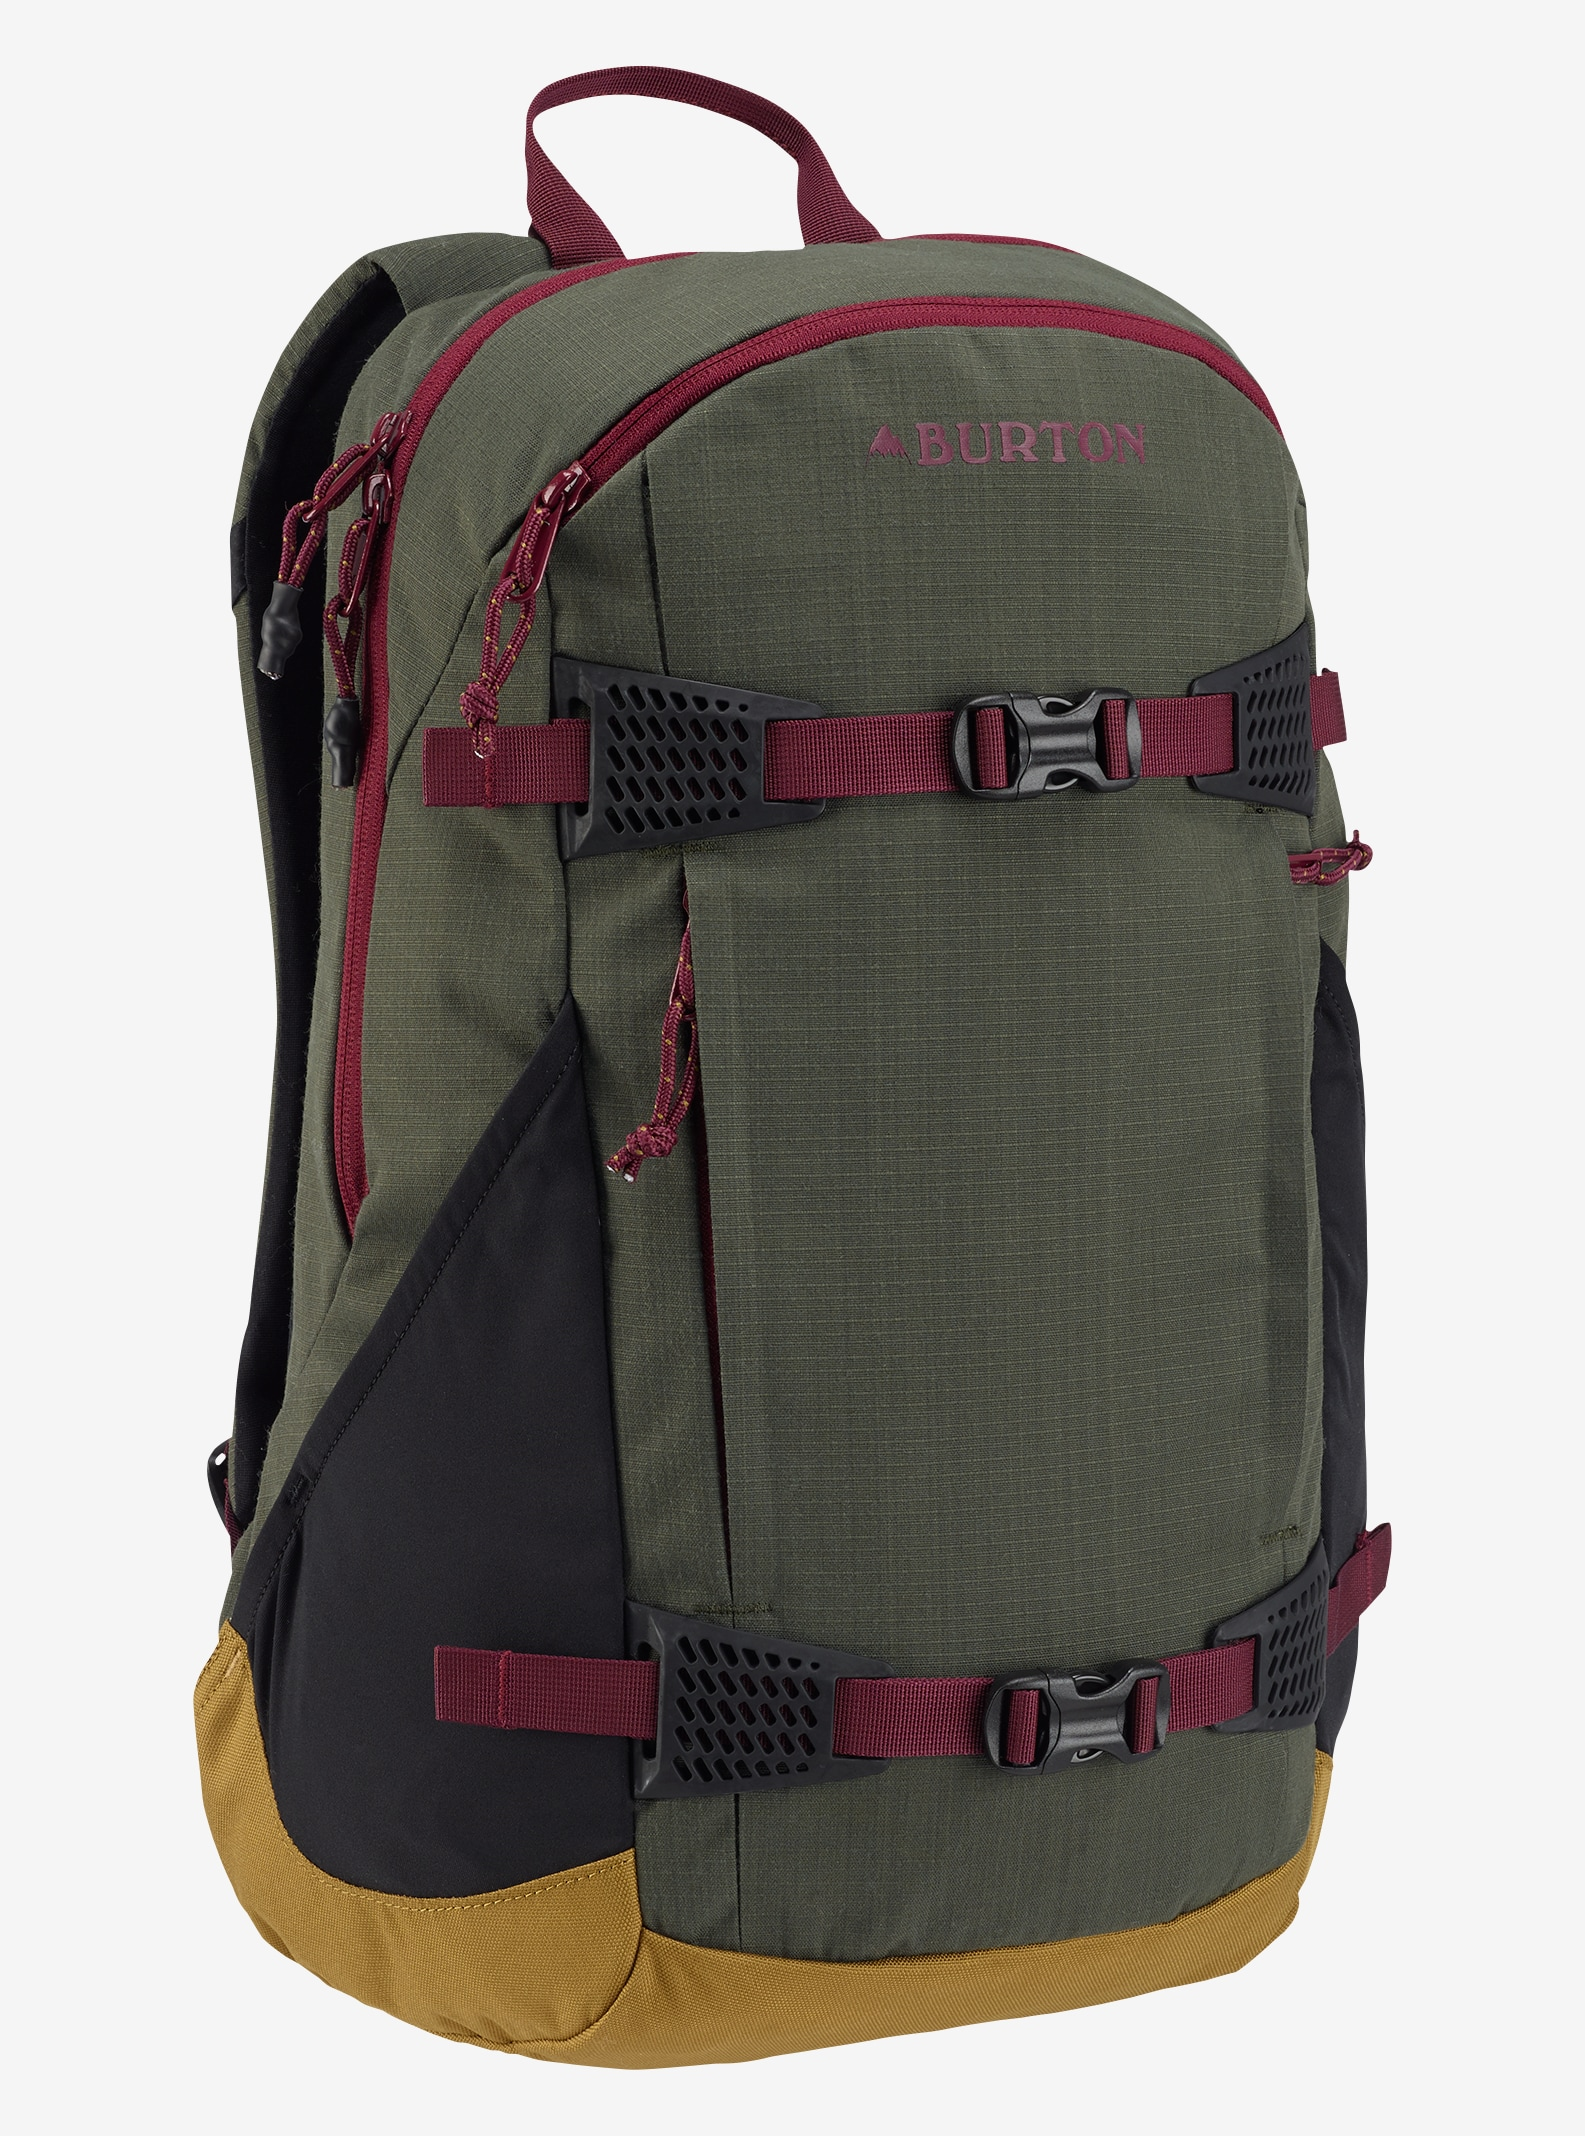 Burton - Sac à dos 25 L Day Hiker femme affichage en Forest Night Ripstop